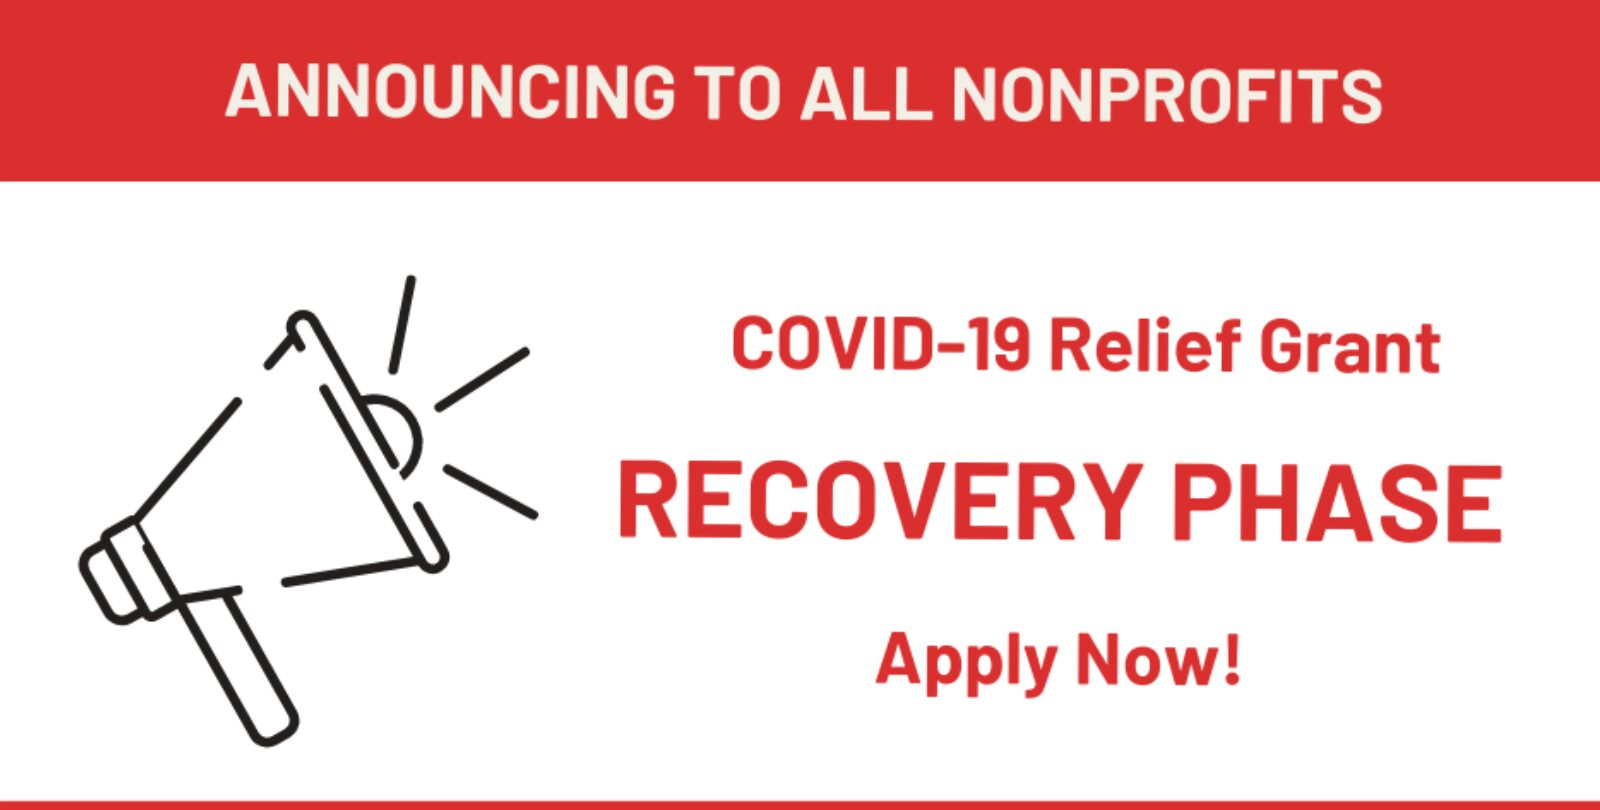 COVID-19 Relief Grant Recovery Phase Now Available